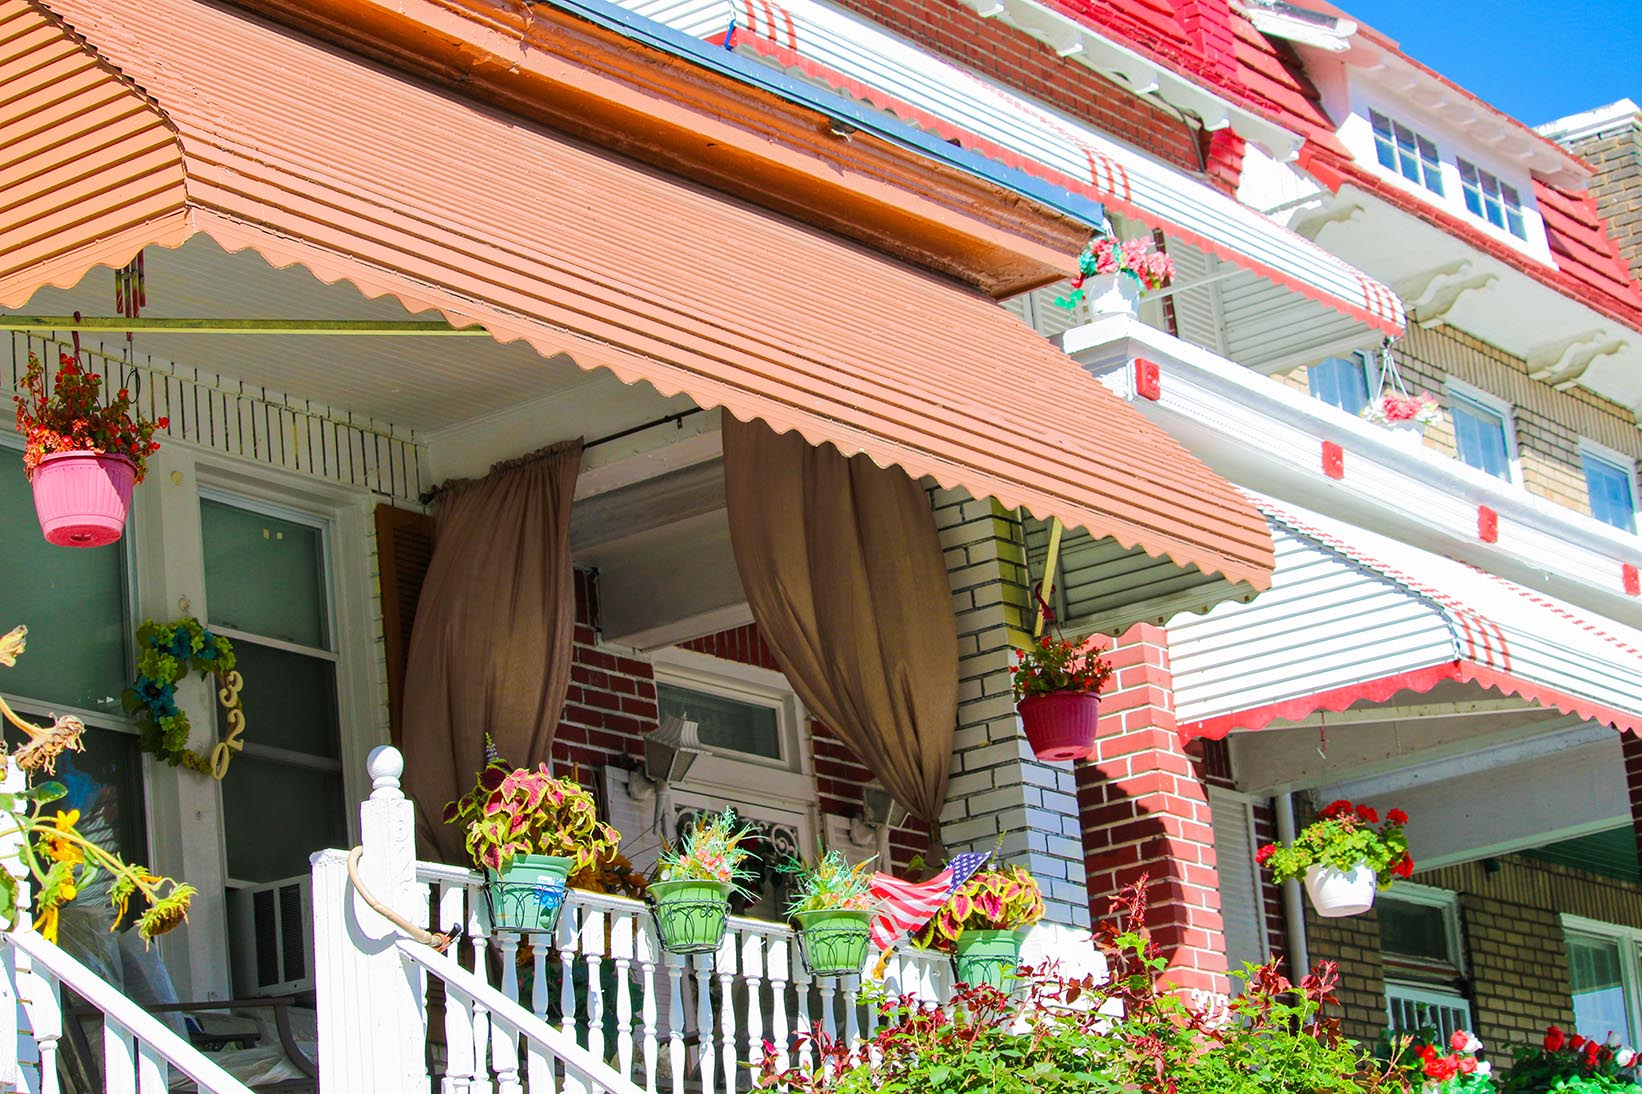 Houses with plants and awnings in Eckington, Washington, D.C.